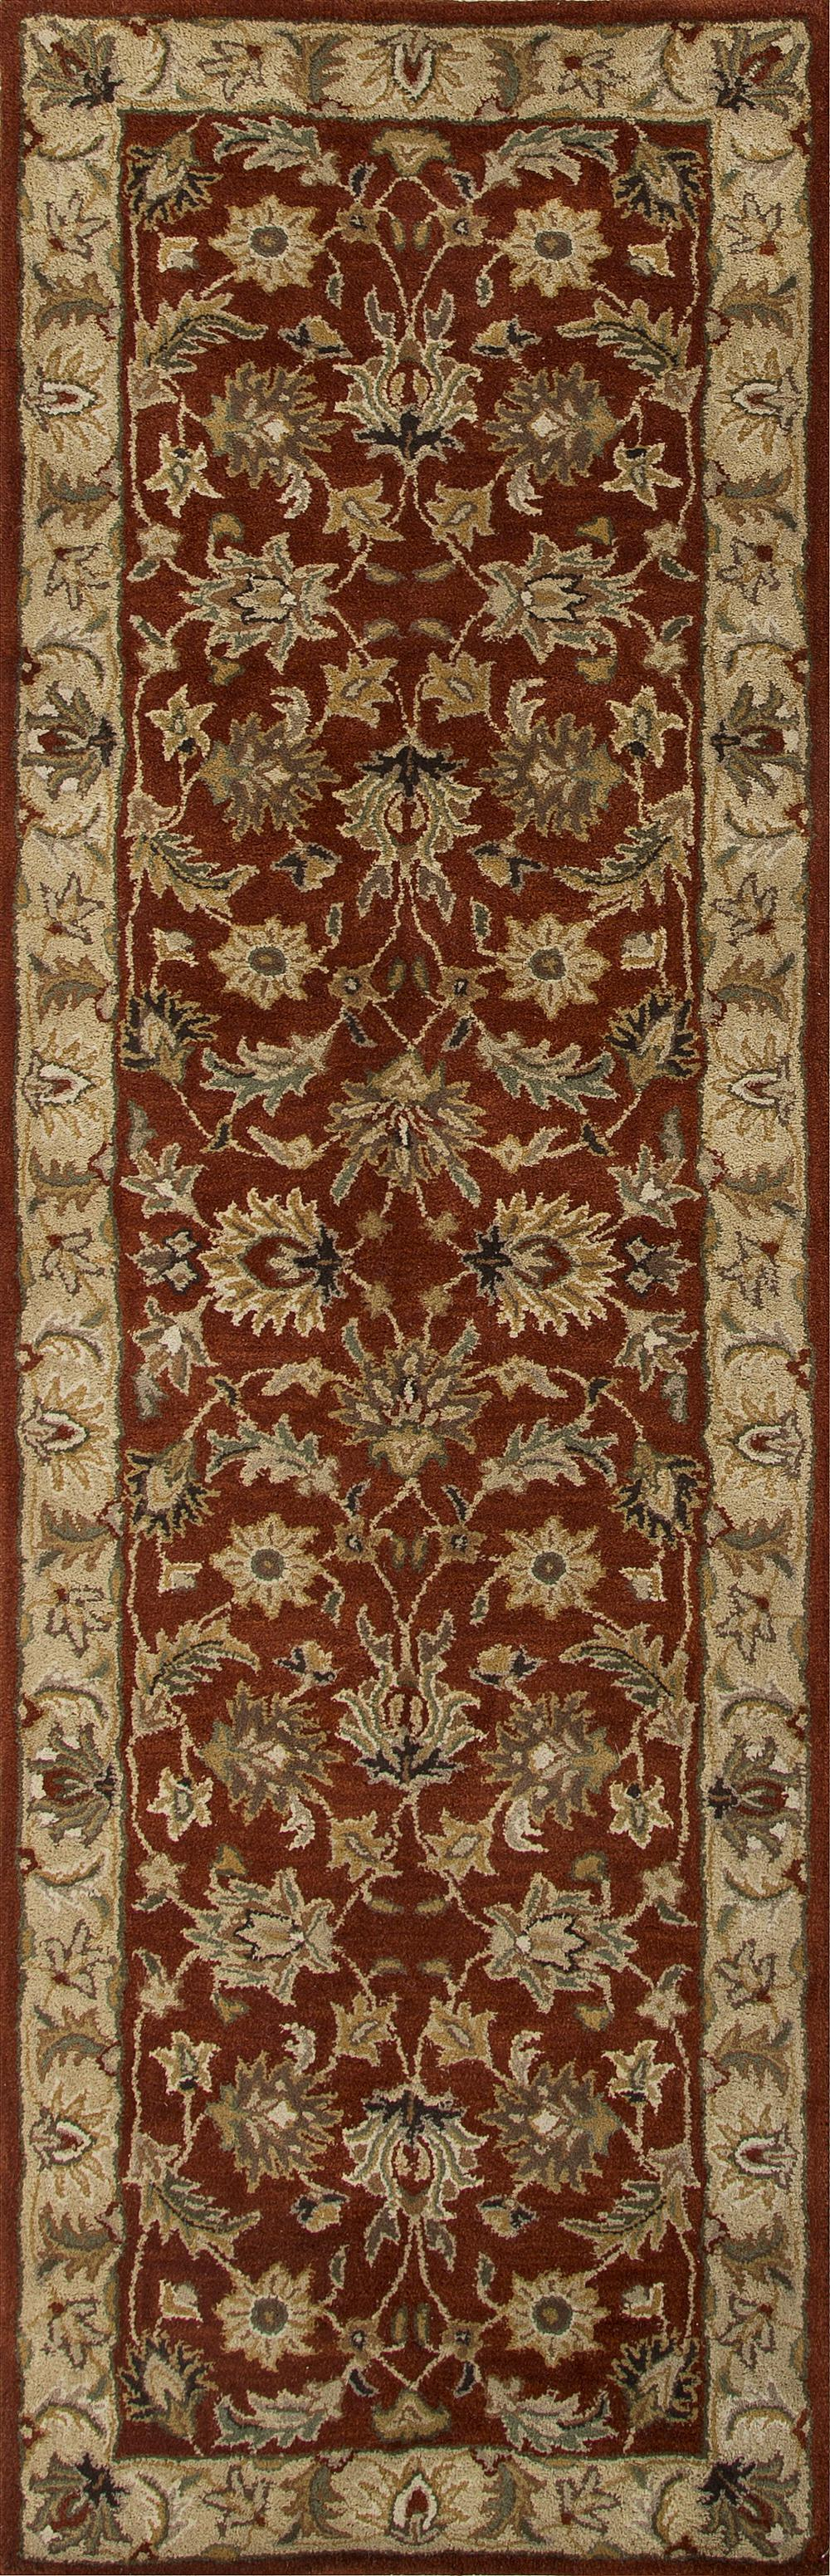 Jaipur Mythos Selene Red Taupe My04 Area Rug Free Shipping